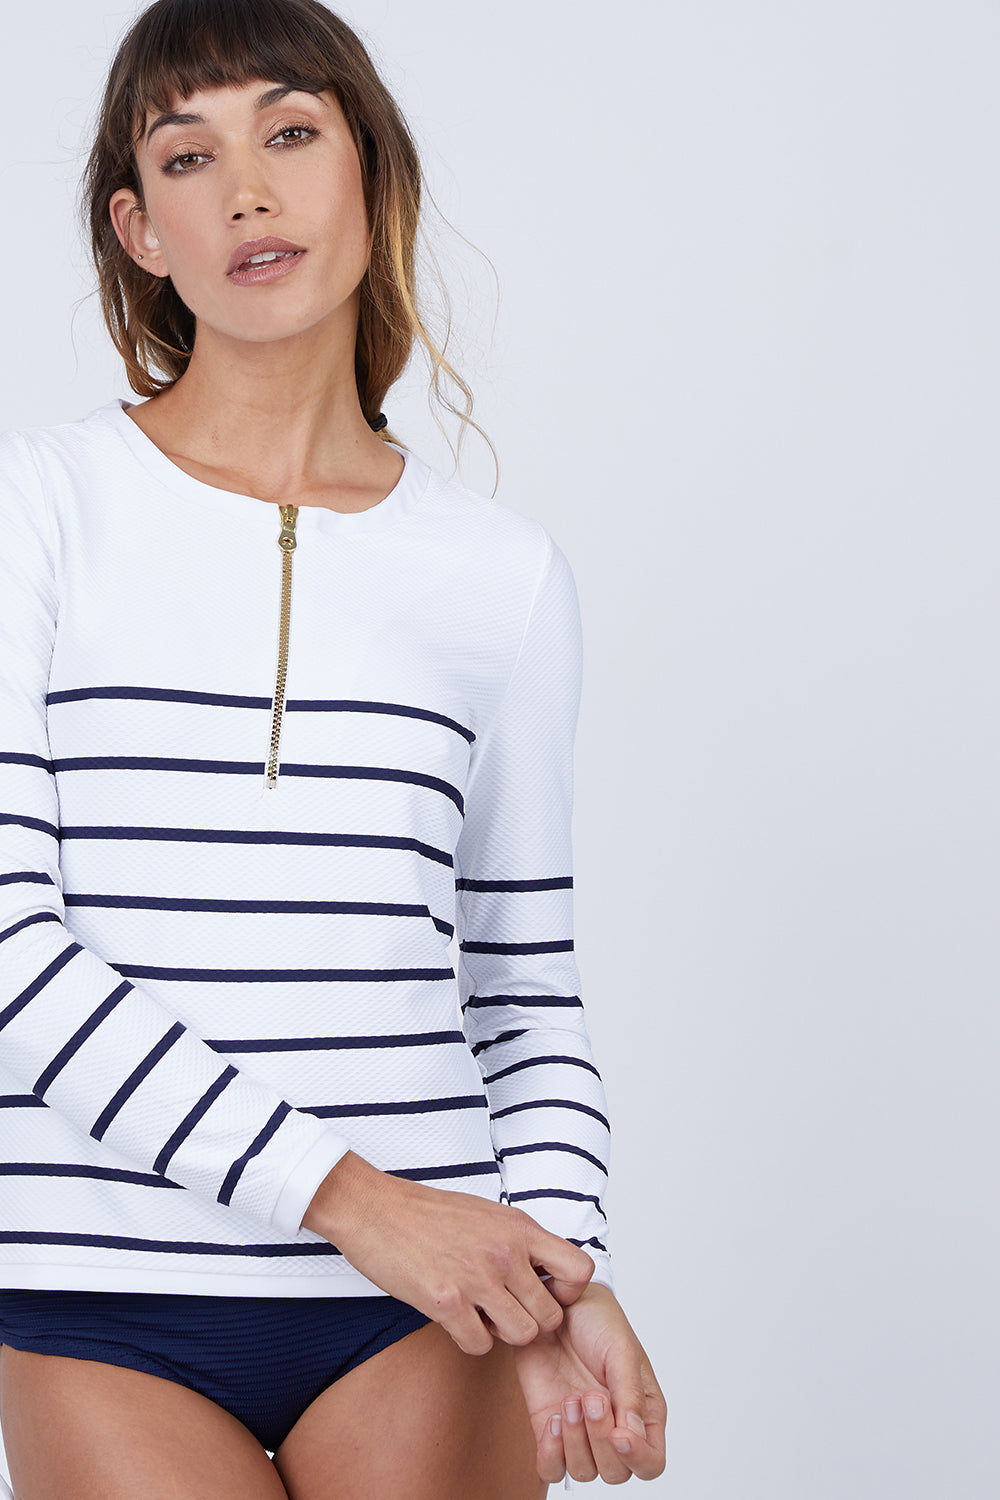 HEIDI KLEIN Zipper Front Long Sleeve Rashguard - Nautical Stripe Print Bikini Top | Nautical Stripe Print | Heidi Klein Zipper Front Long Sleeve Rashguard - Nautical Stripe Print  Features:  Rash vests in block colors and slimline stripes swimsuits Impeccably cut for a flattering fit from technically advanced textured fabric Finished with beautifully weighted hardware Composition: 85% Polyamide 15% Elastane Front View